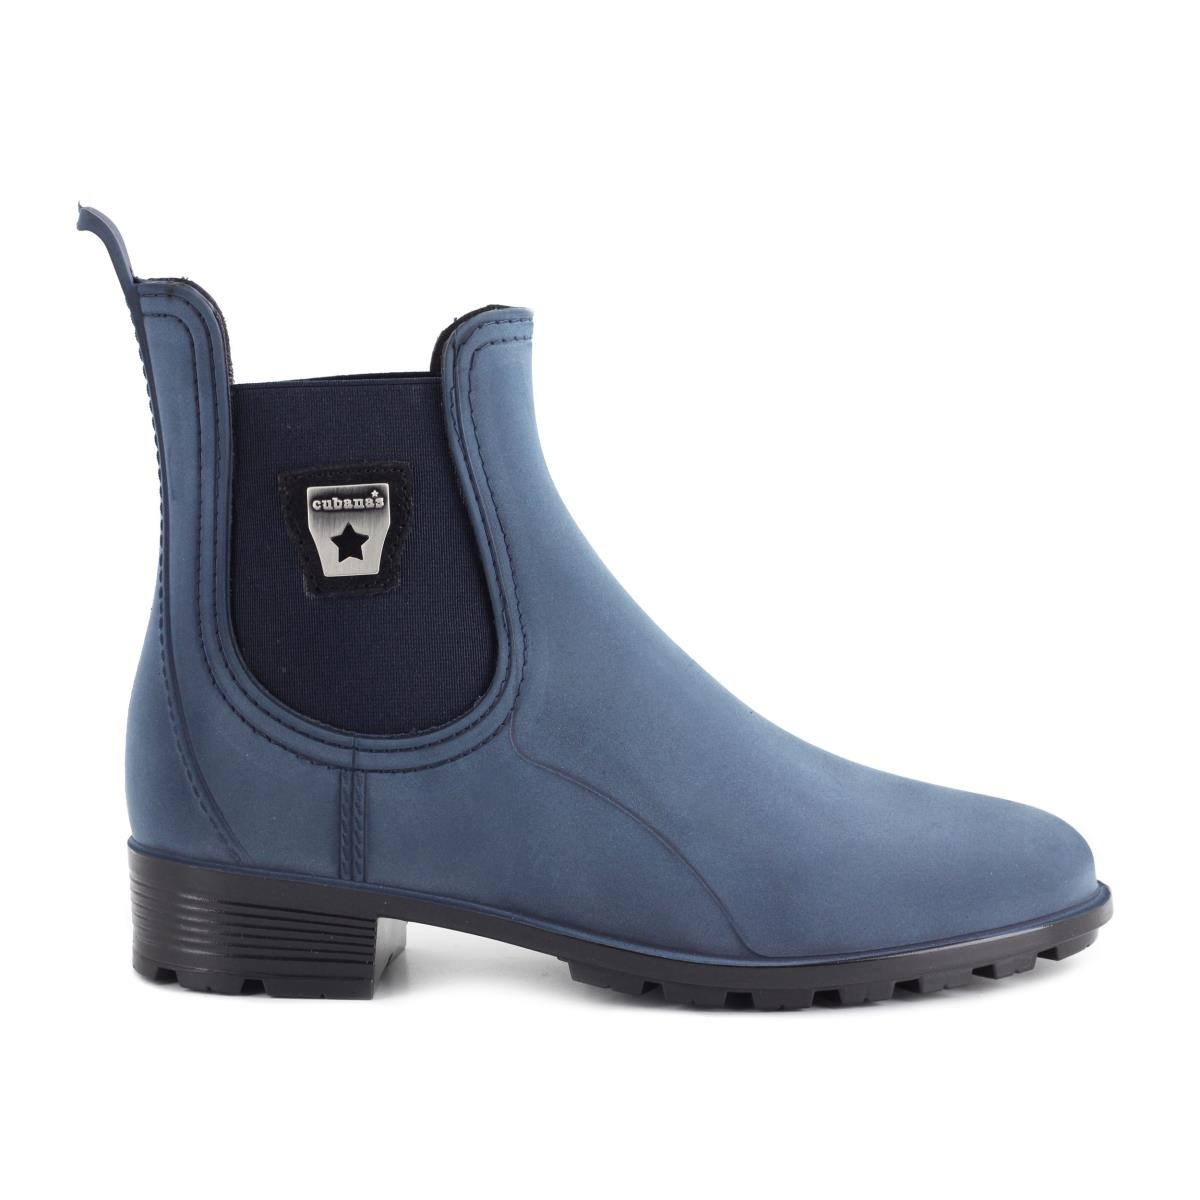 RAINYBOOT CUBANAS RAINY610 MIDNIGHT BLUE